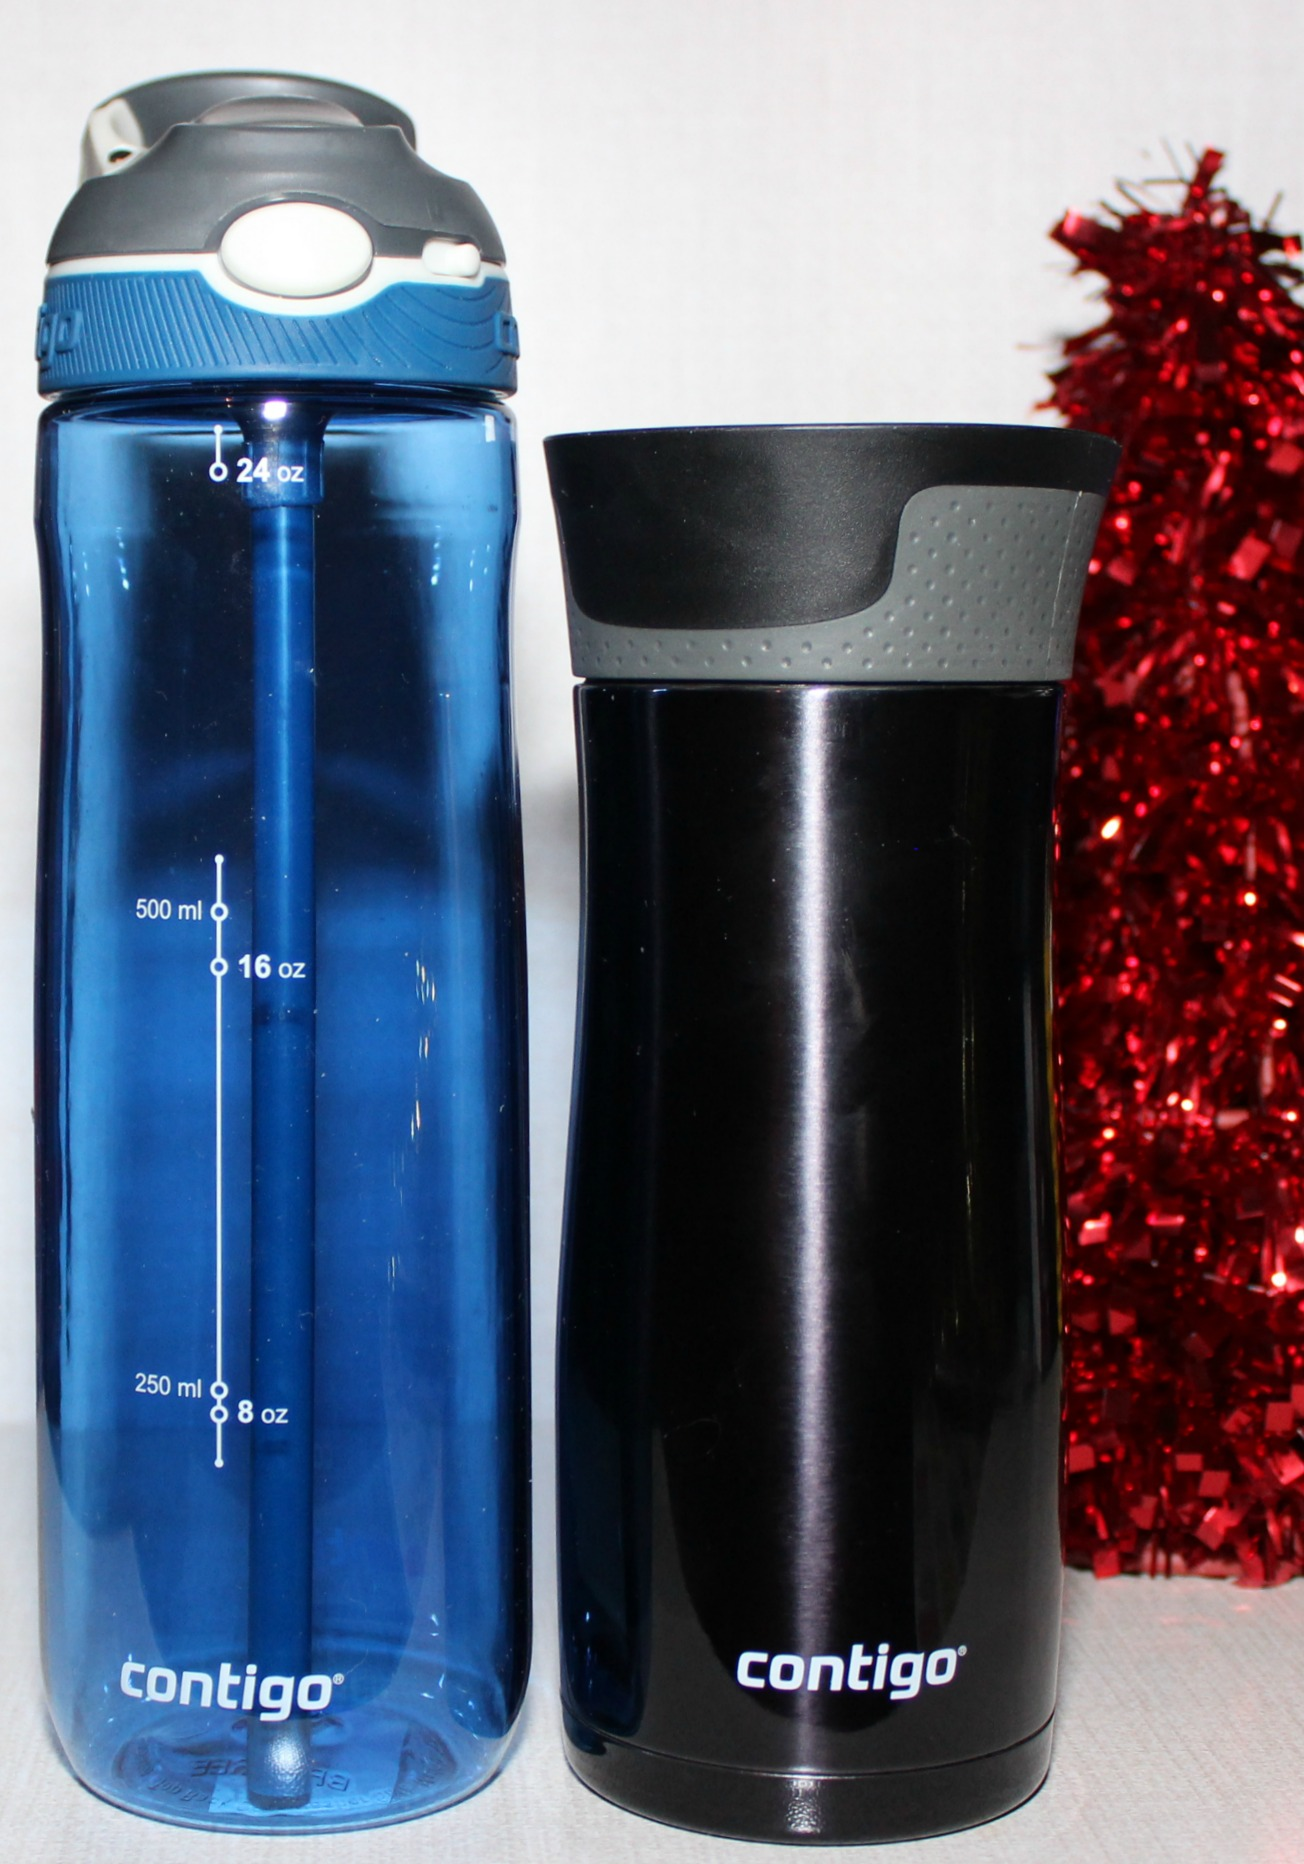 Contigo holiday gift guide